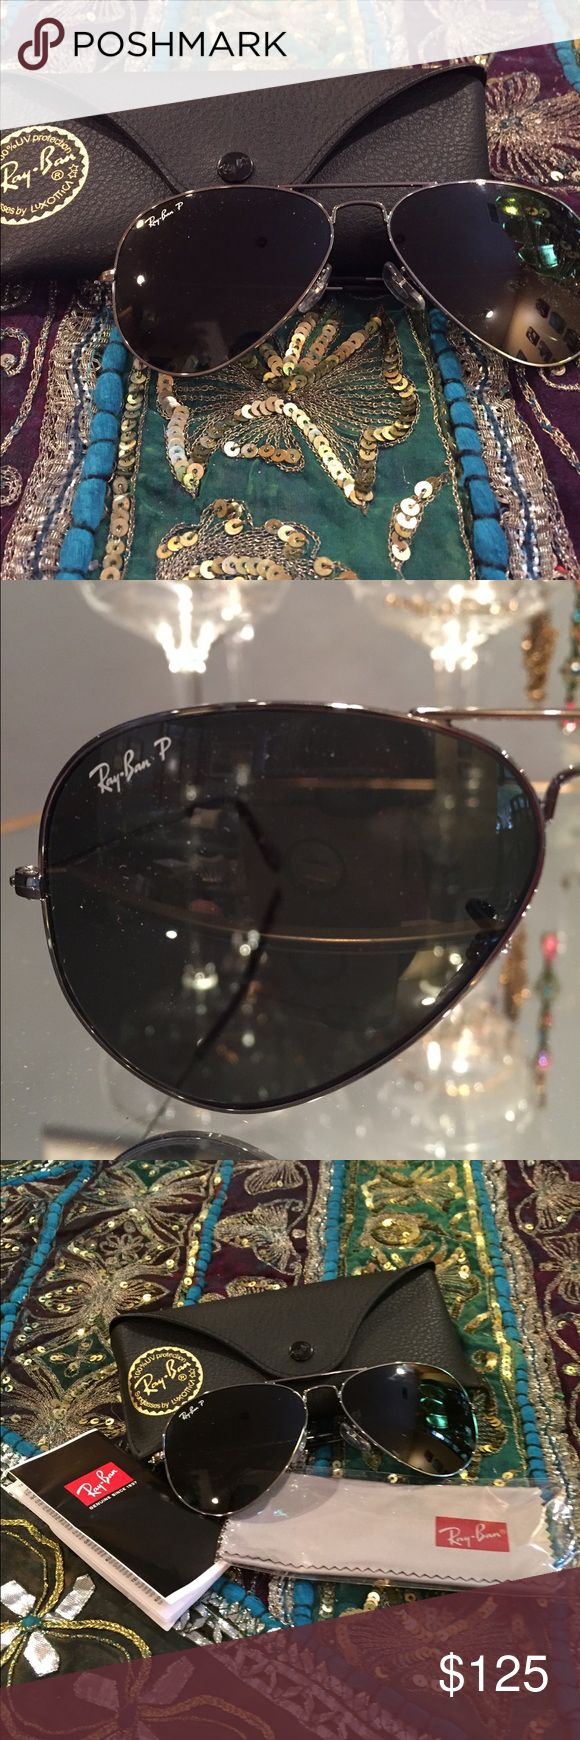 Brand New Ray Ban 3025 Polarized Aviators Large. Brand new! Bought in early summer but never worn and lost receipt. Authentic! RB 3025. Aviator Large Metal. 004/58. 58Q14. 3P. Made in Italy. Gunmetal frames. Ray-Ban Accessories Sunglasses